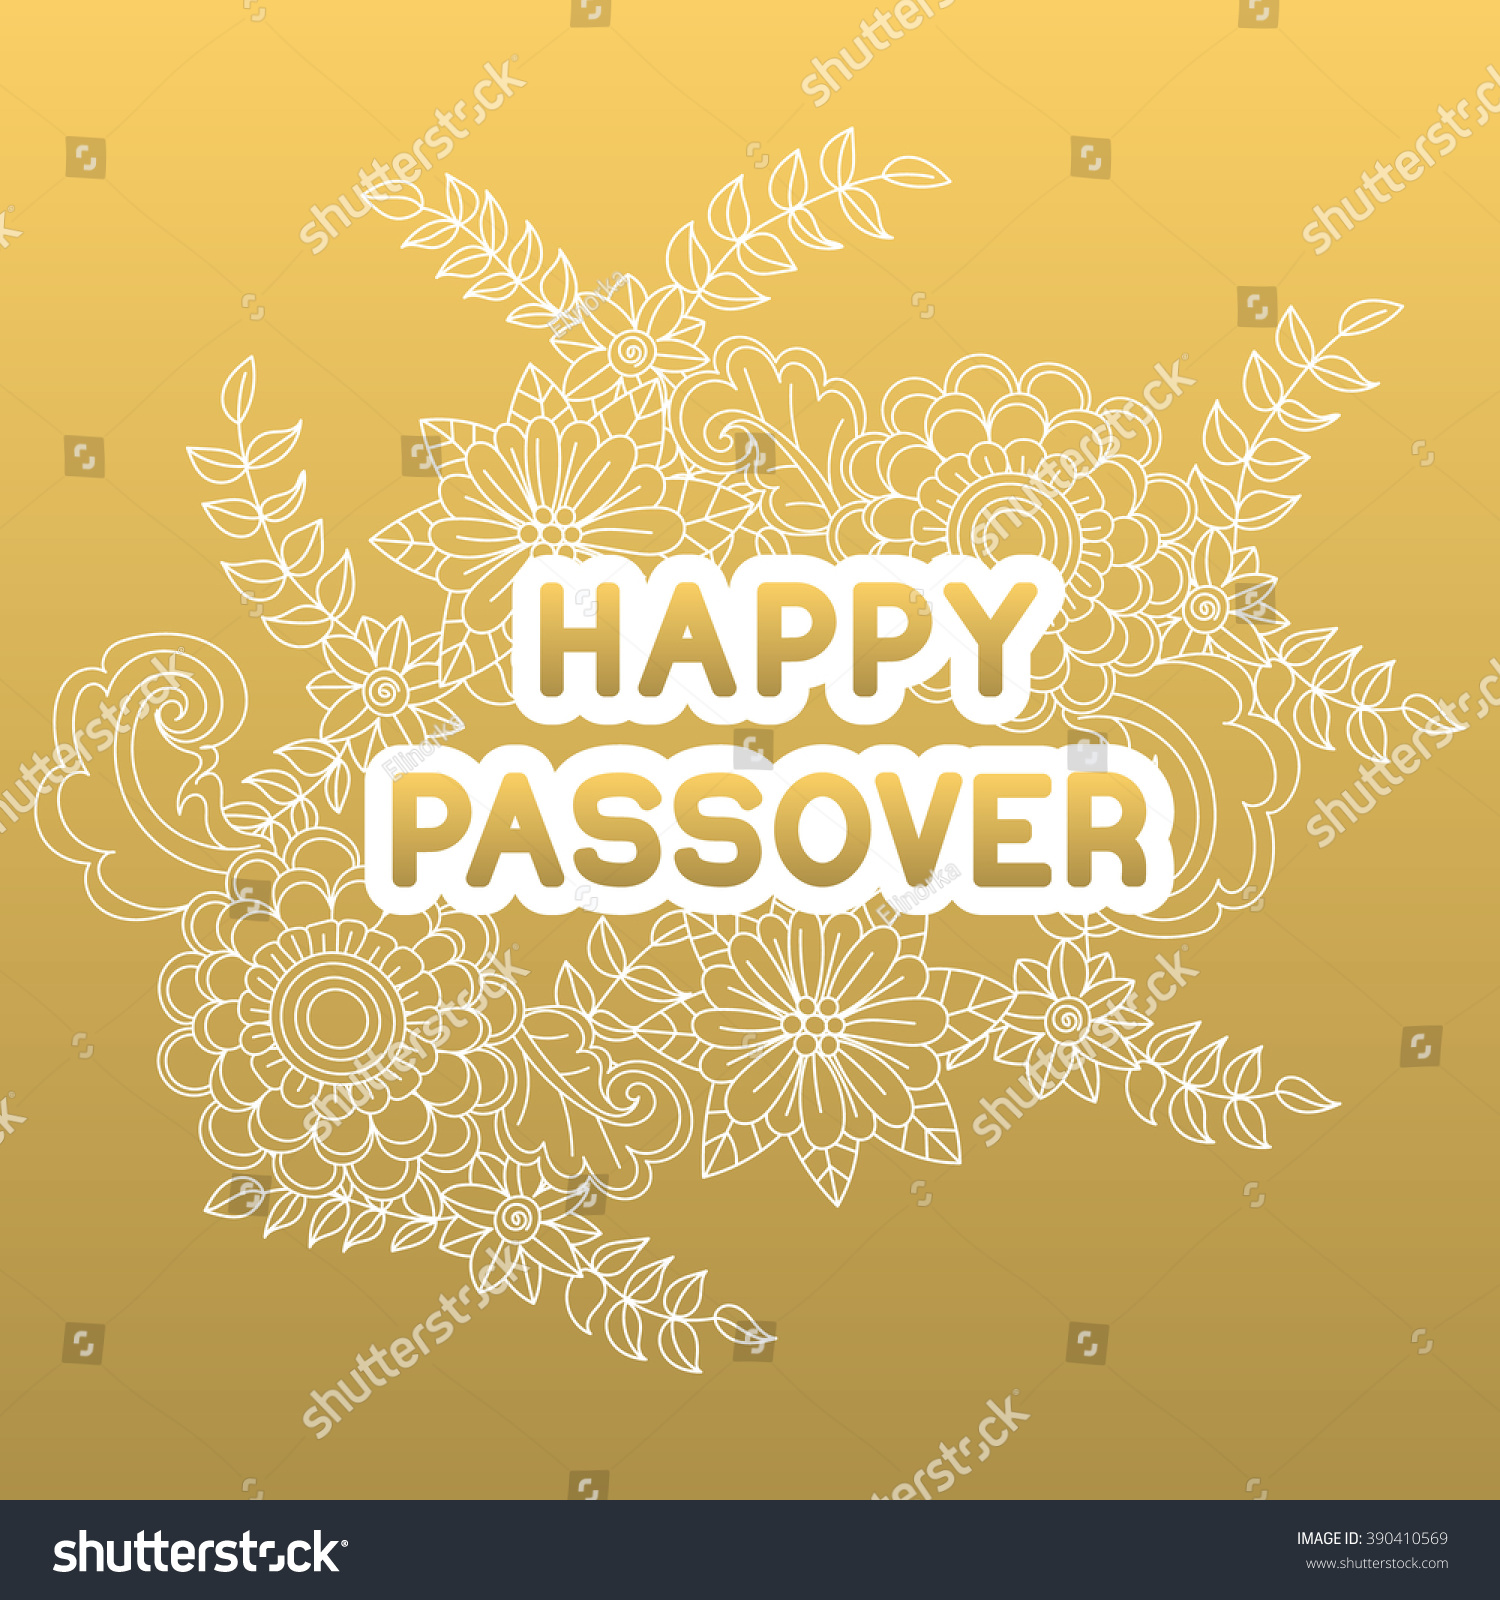 Happy passover greeting card hand drawn stock vector 390410569 happy passover greeting card hand drawn stock vector 390410569 shutterstock m4hsunfo Image collections